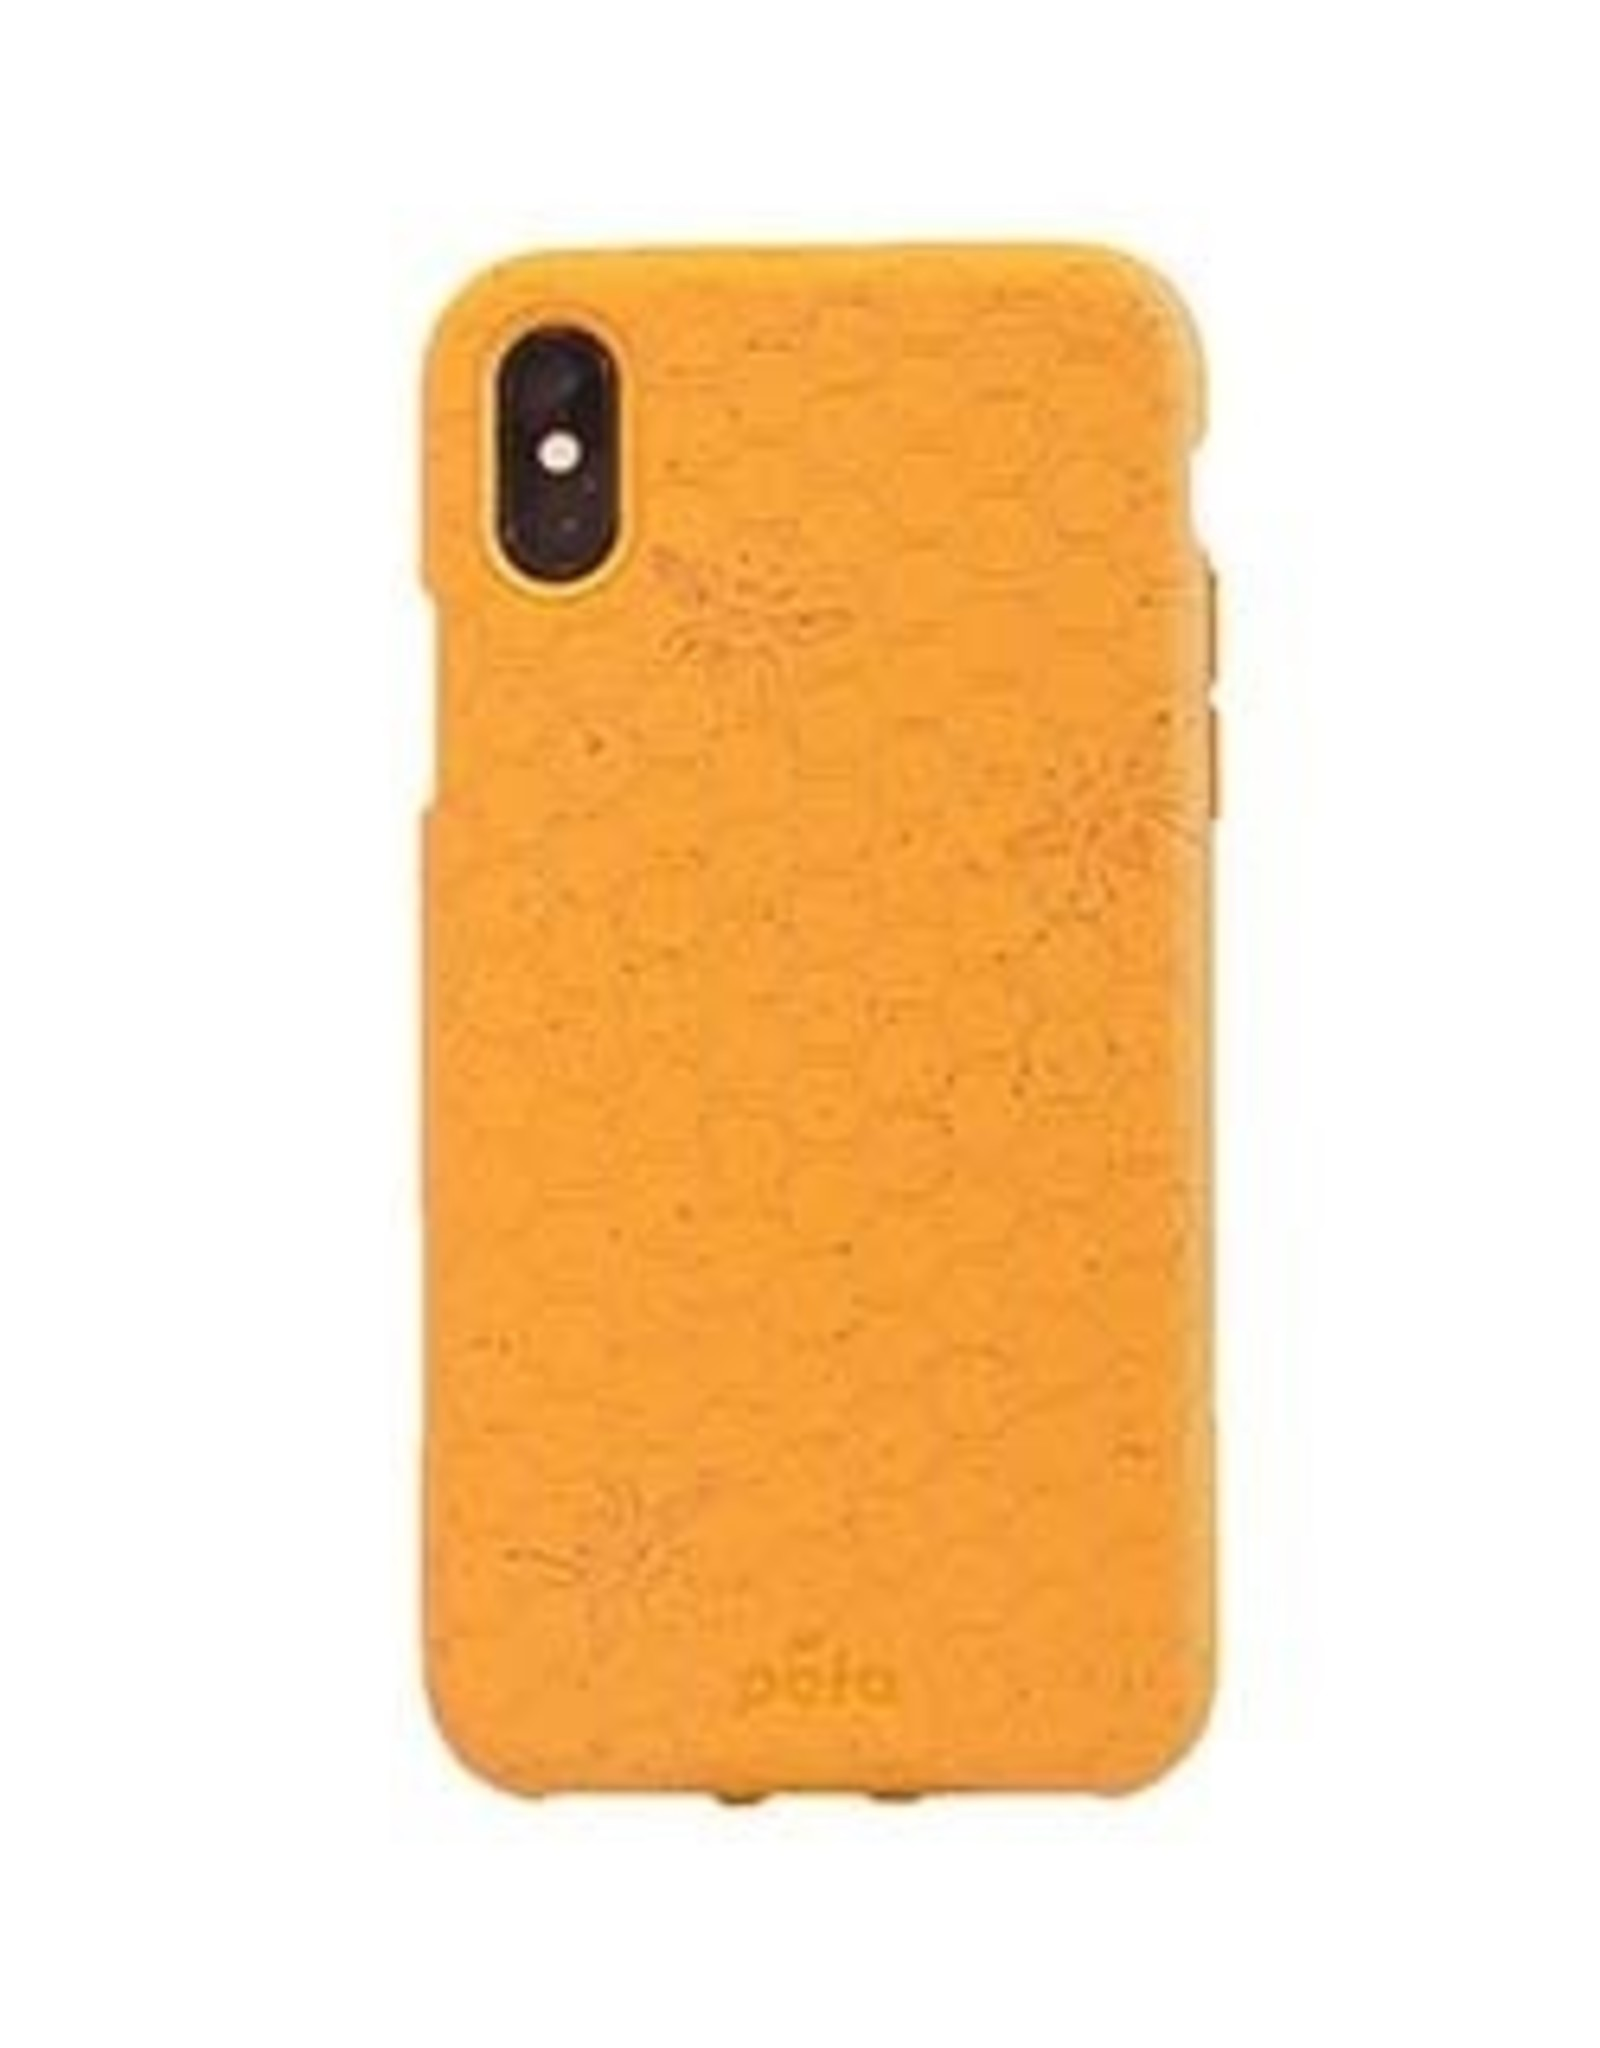 Pela Pela | iPhone Xs Max Yellow Honey Bee Edition Compostable Eco-Friendly Protective Case | 15-04743